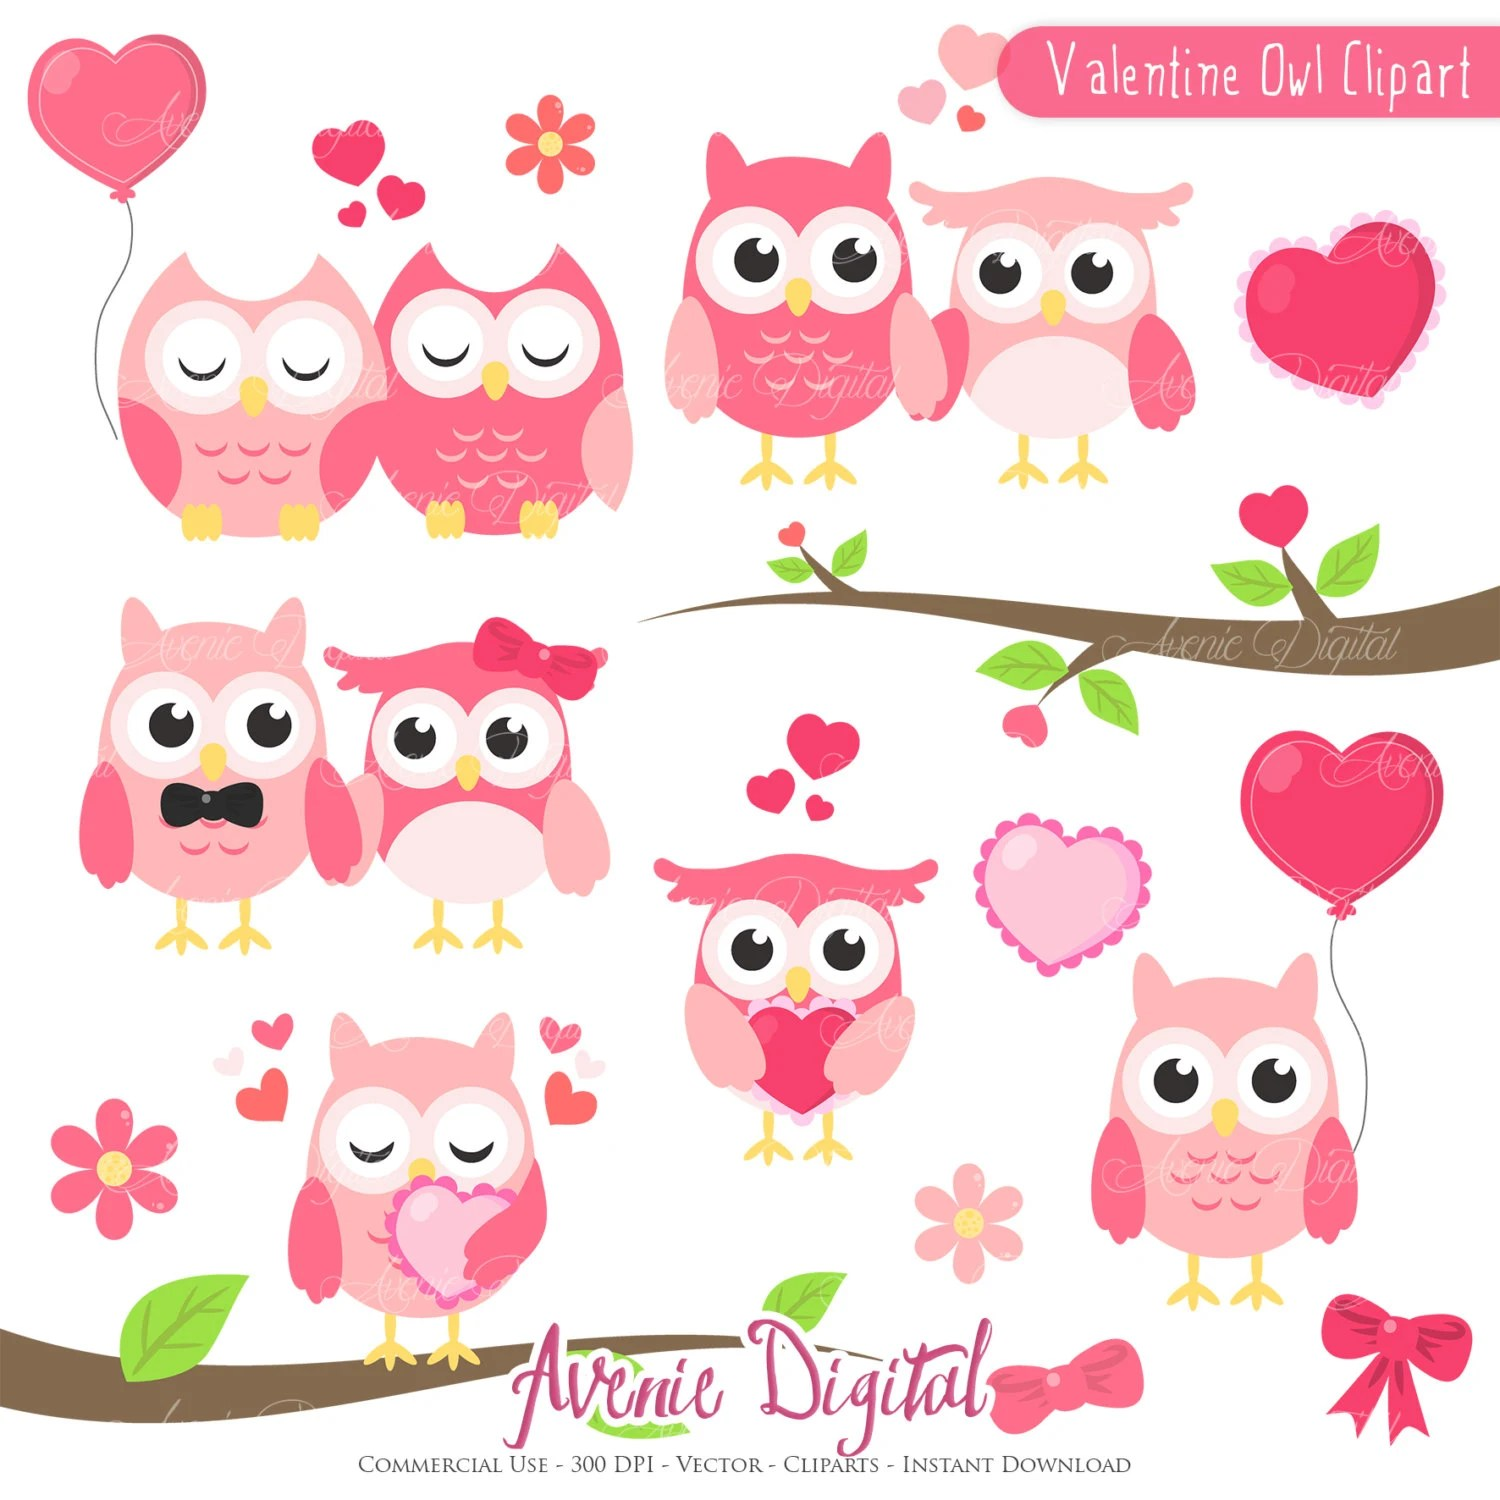 Valentines Owl Clipart Scrapbook Printables Holiday Clip Art Set For Commercial Use Valentine